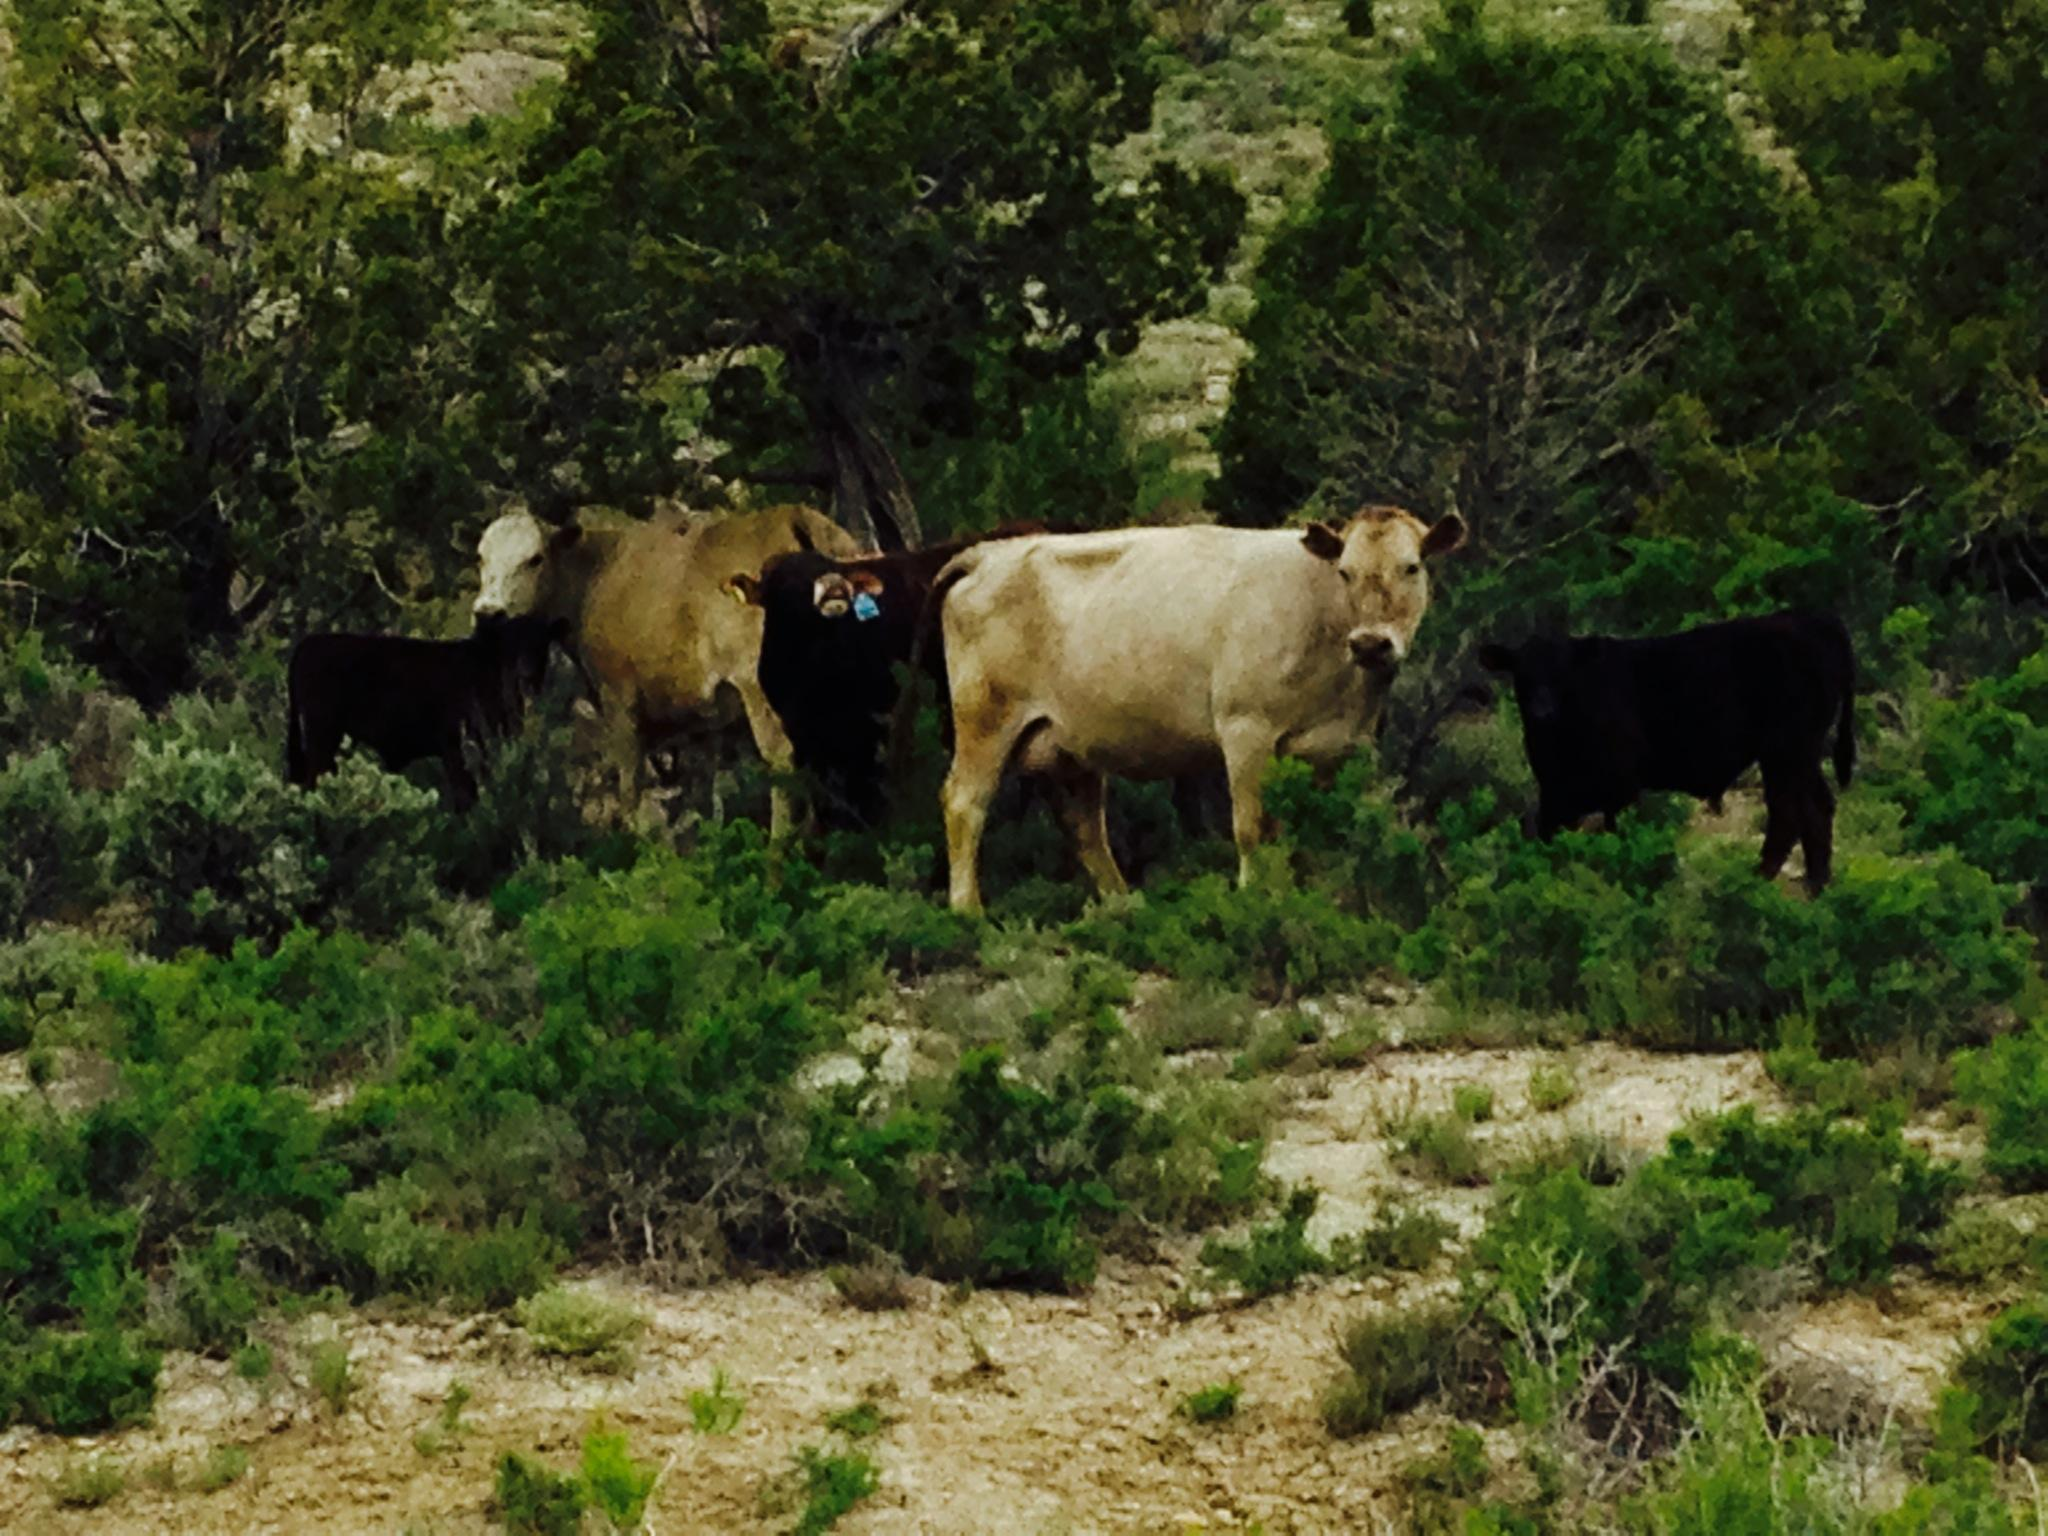 Rare private property of 466 acres near Tropic/Cannonville, UT.  Views of Bryce Canyon National Park and Escalante Mountain. Paria river runs through corner of property. Perfect for cattle grazing winter months. Not many parcels like this in Southern Utah.